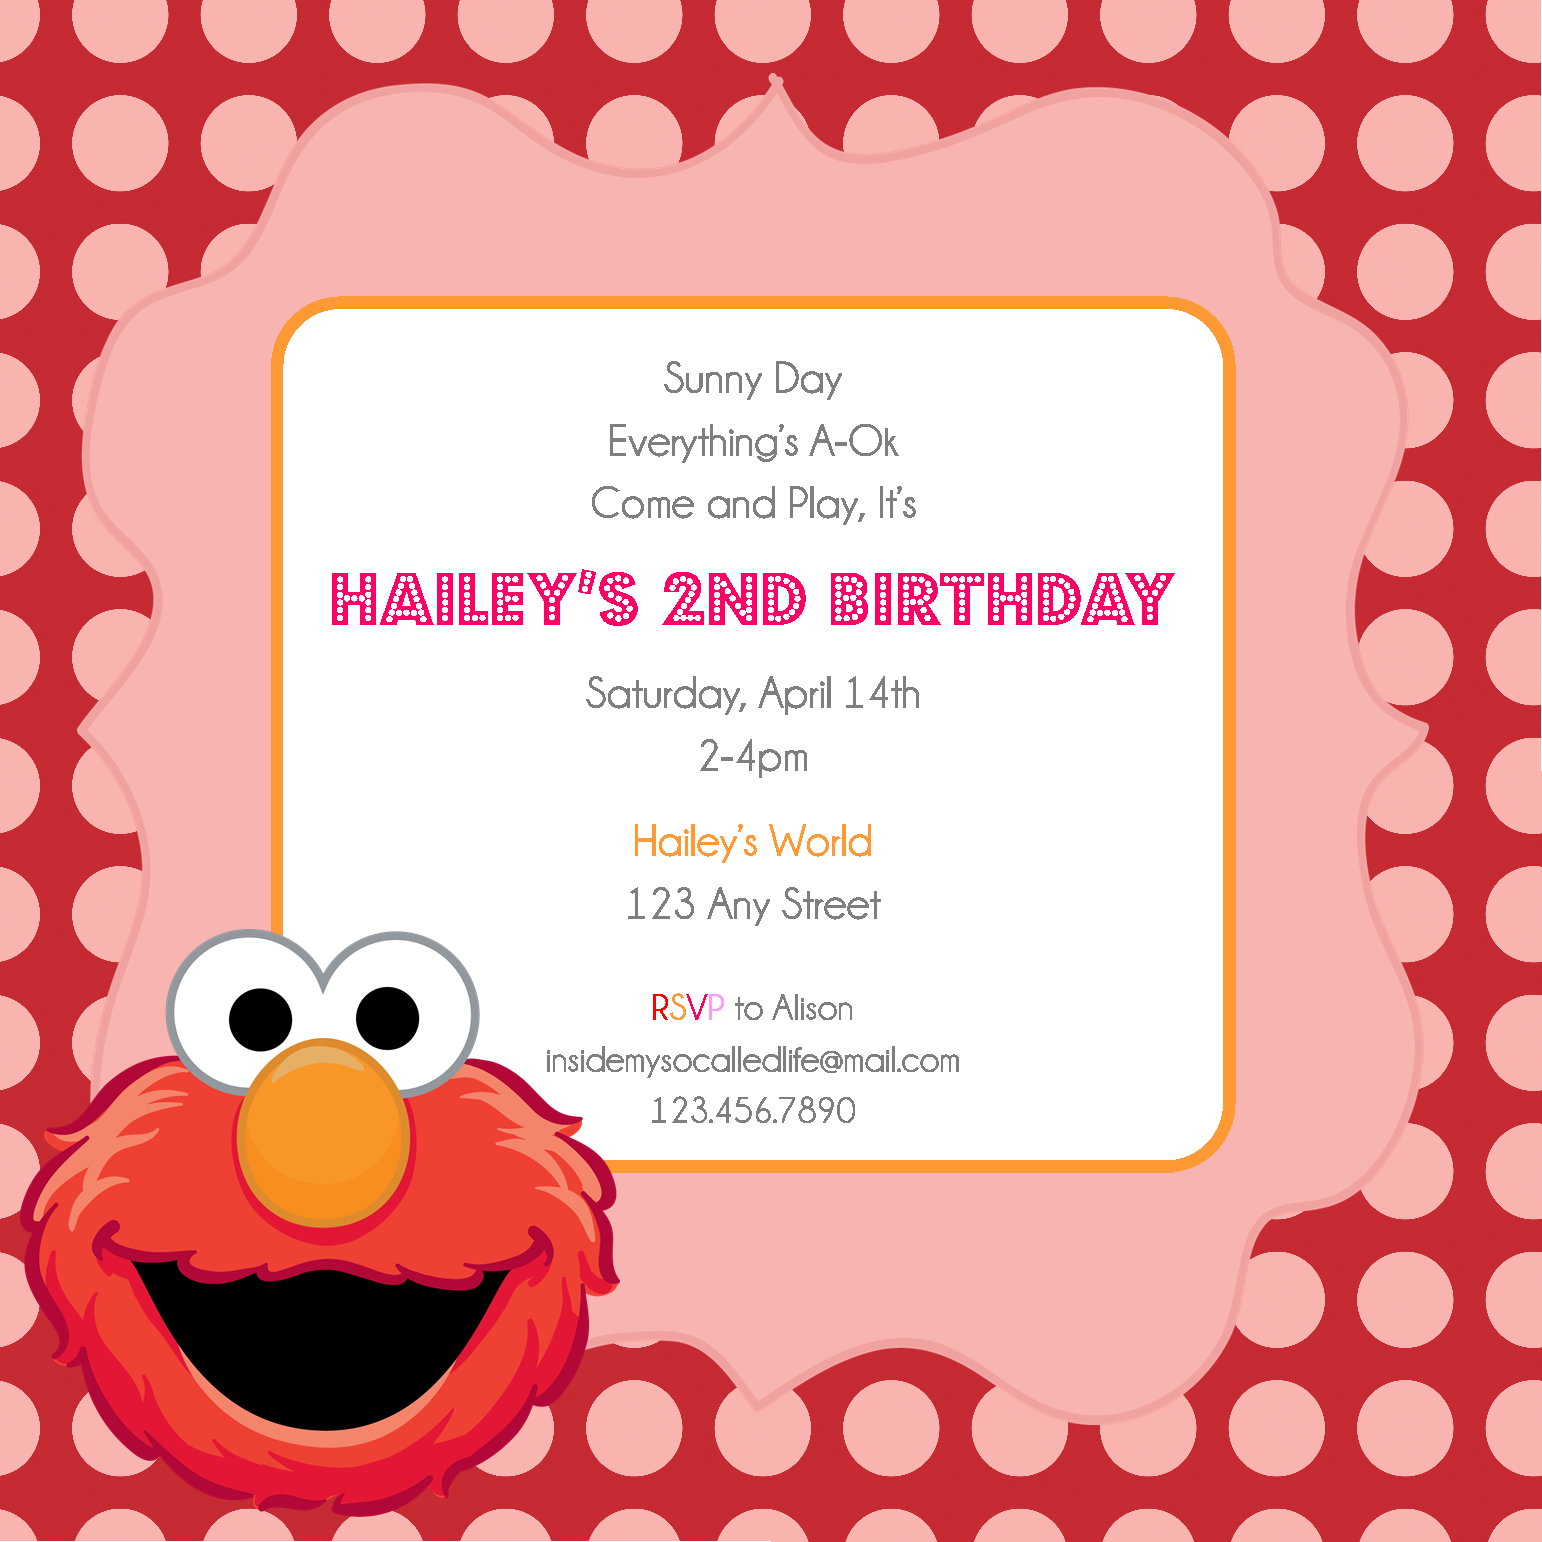 doc format for birthday invitation birthday invitation nursing assistant resume objectivedoc585436 format for birthday format for birthday invitation